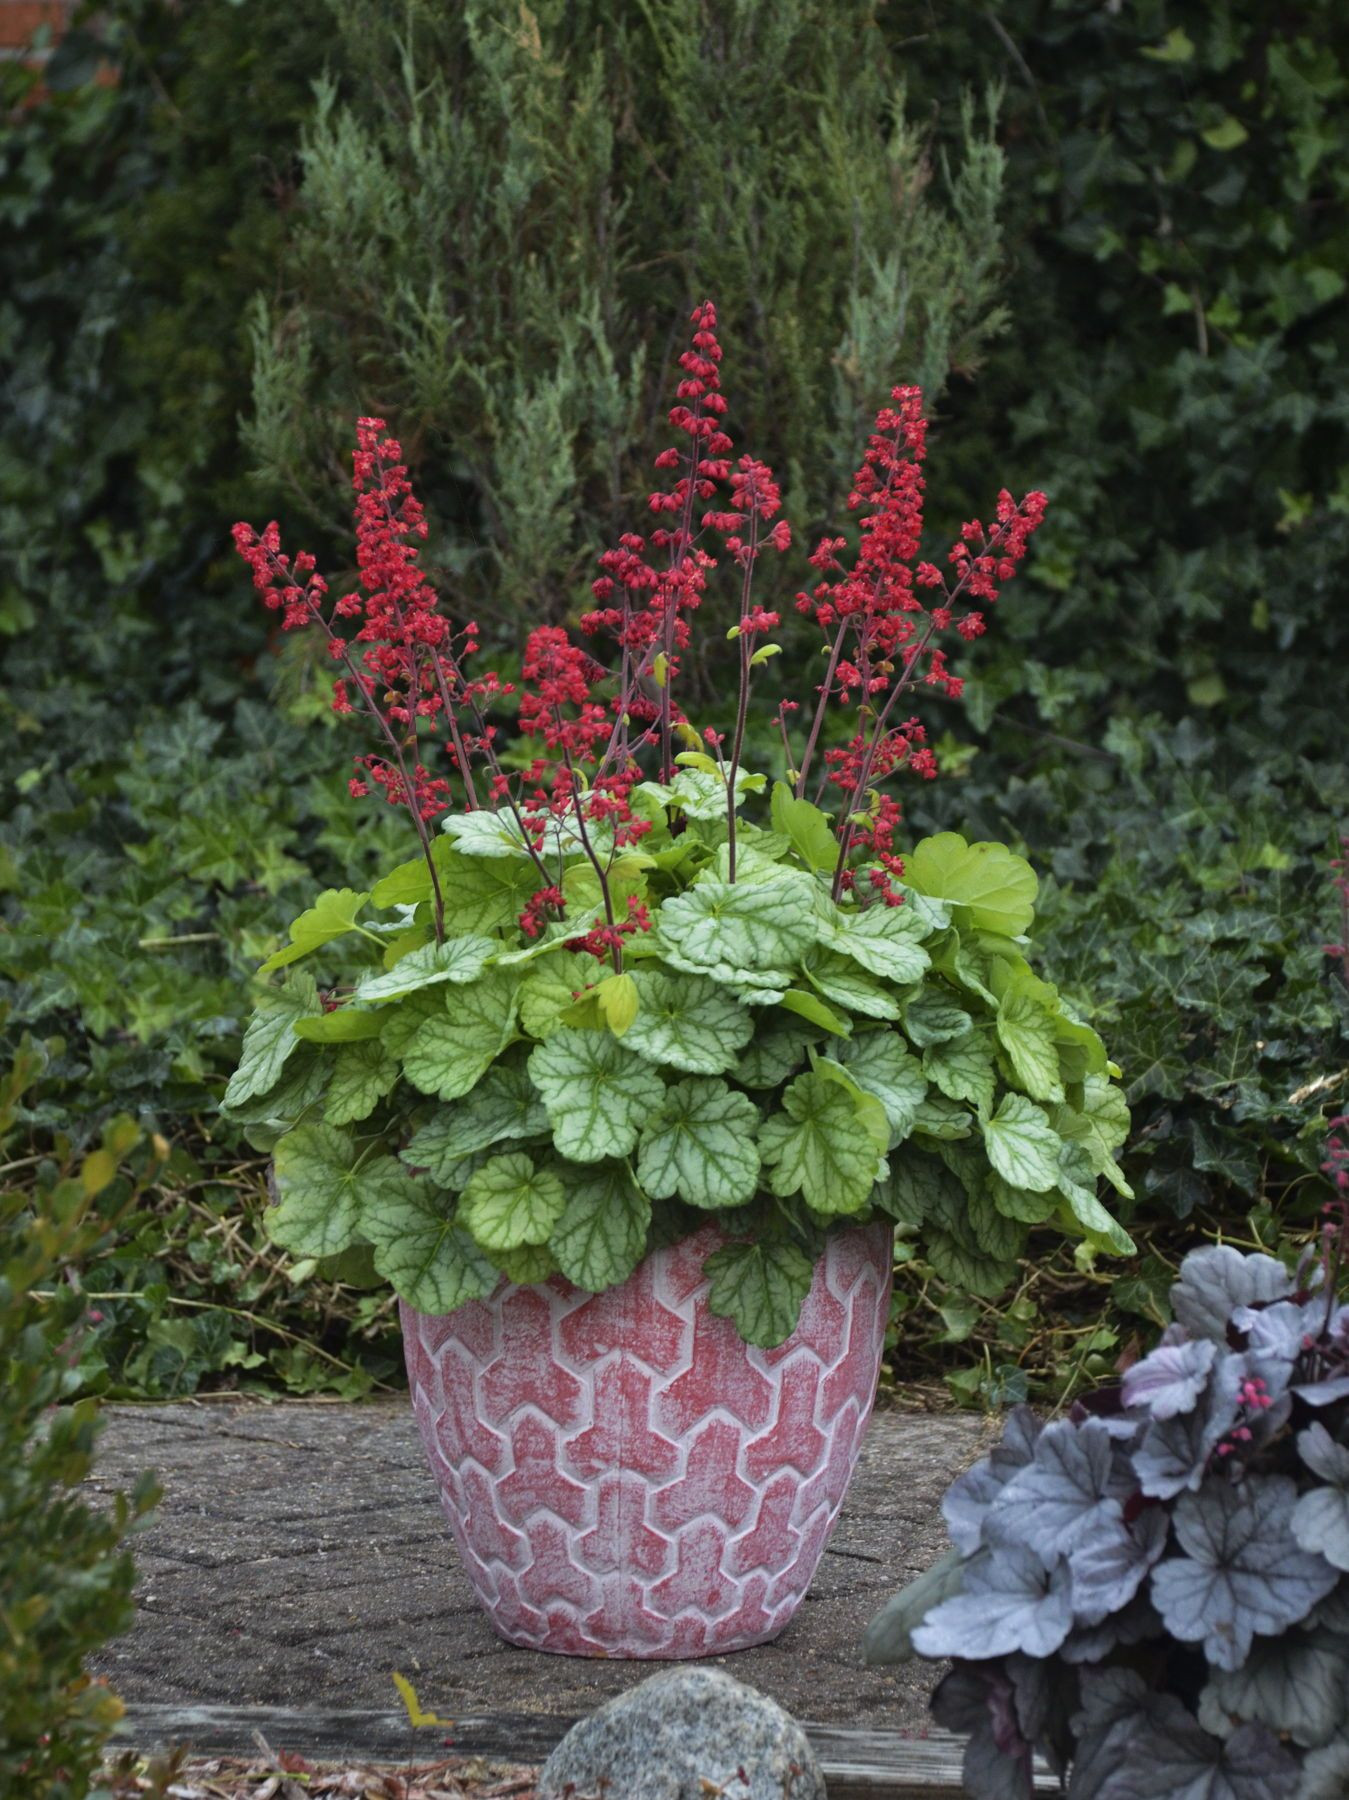 Dolce Appletini heuchera has bright red blooms which truly calls the butterflies and